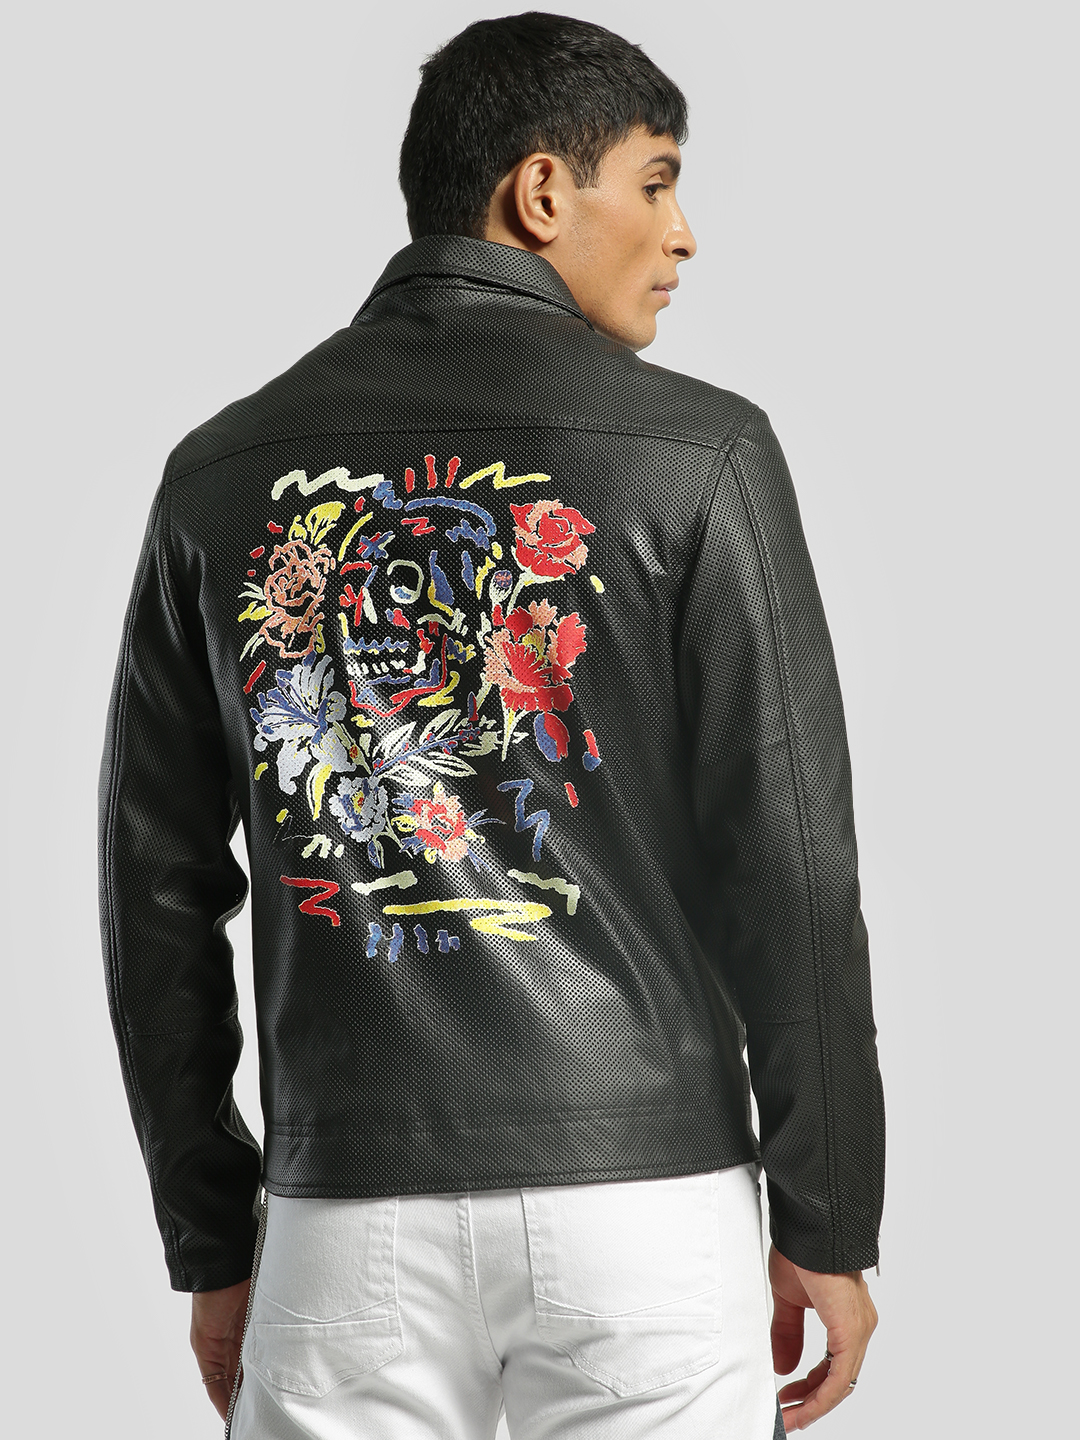 KOOVS Black Perforated Graffiti Print Biker Jacket 1